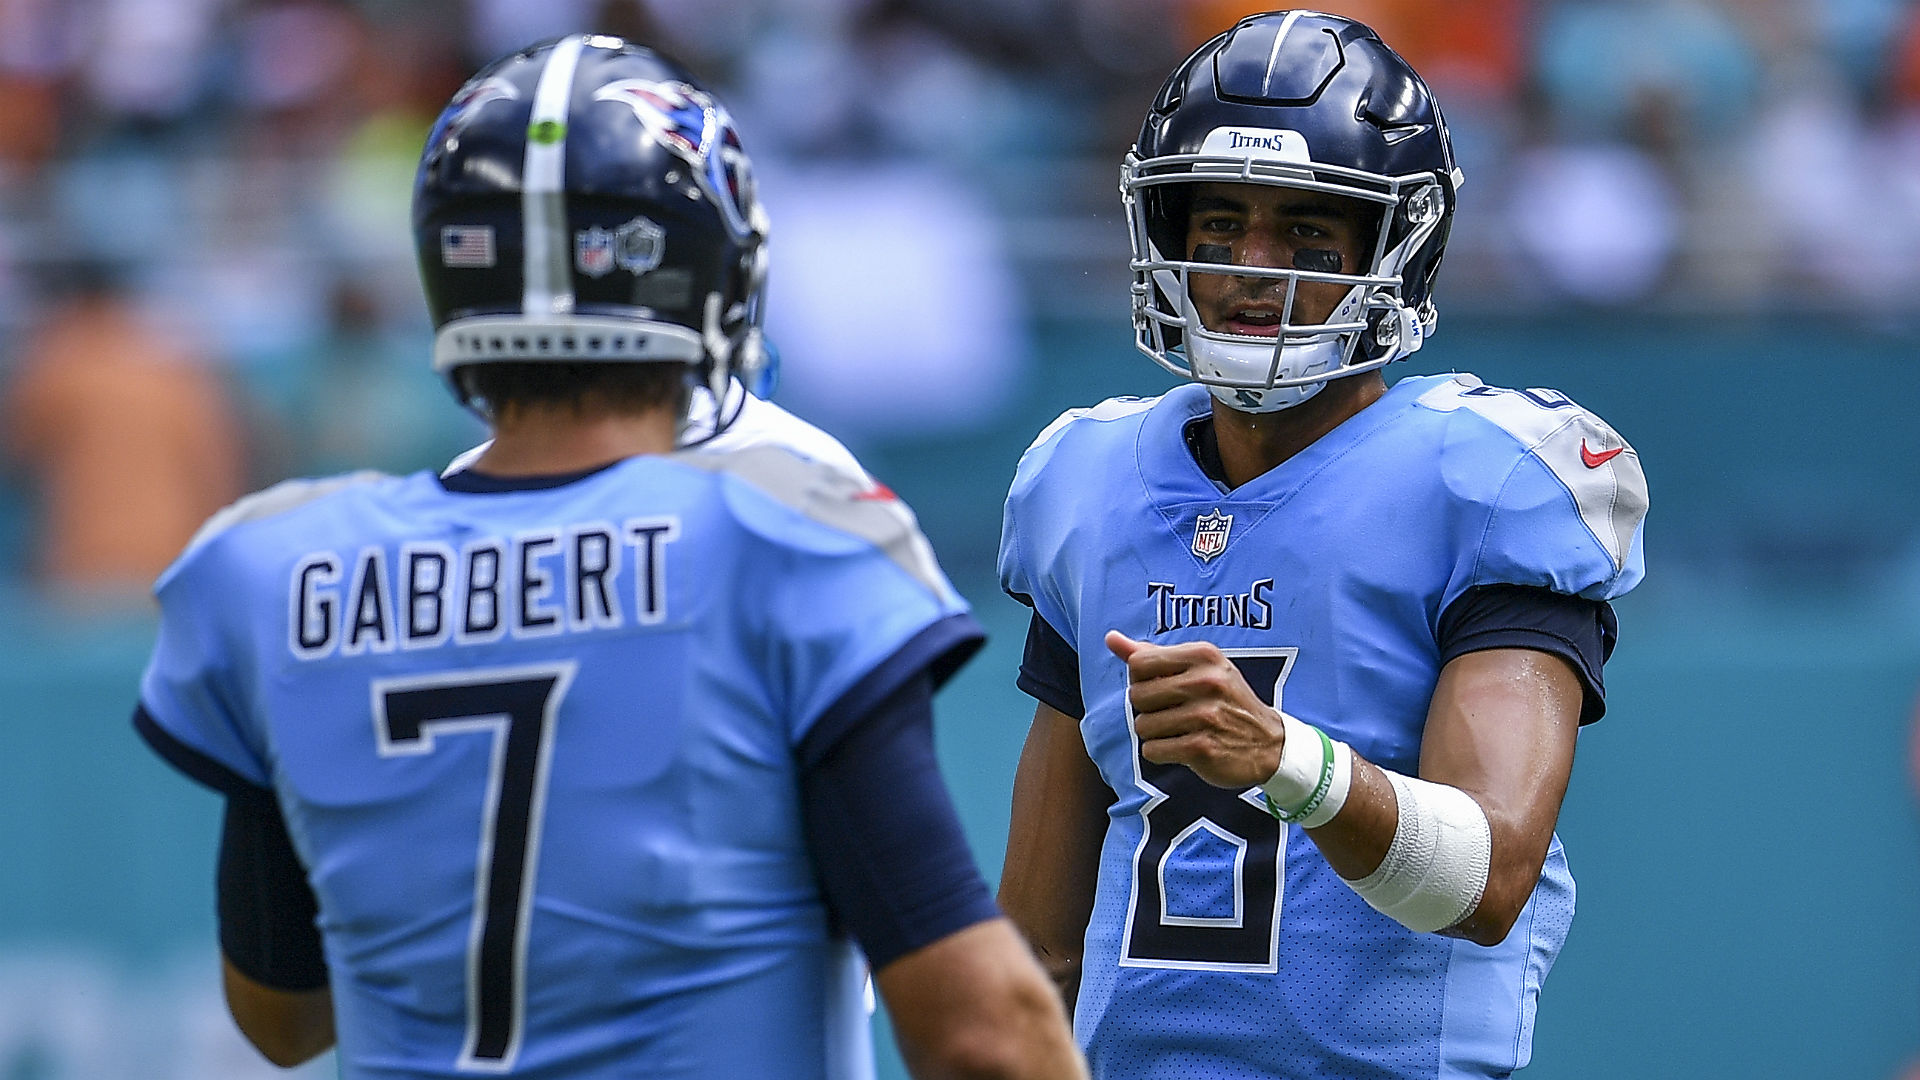 Gabbert leads Titans to second straight win over former team